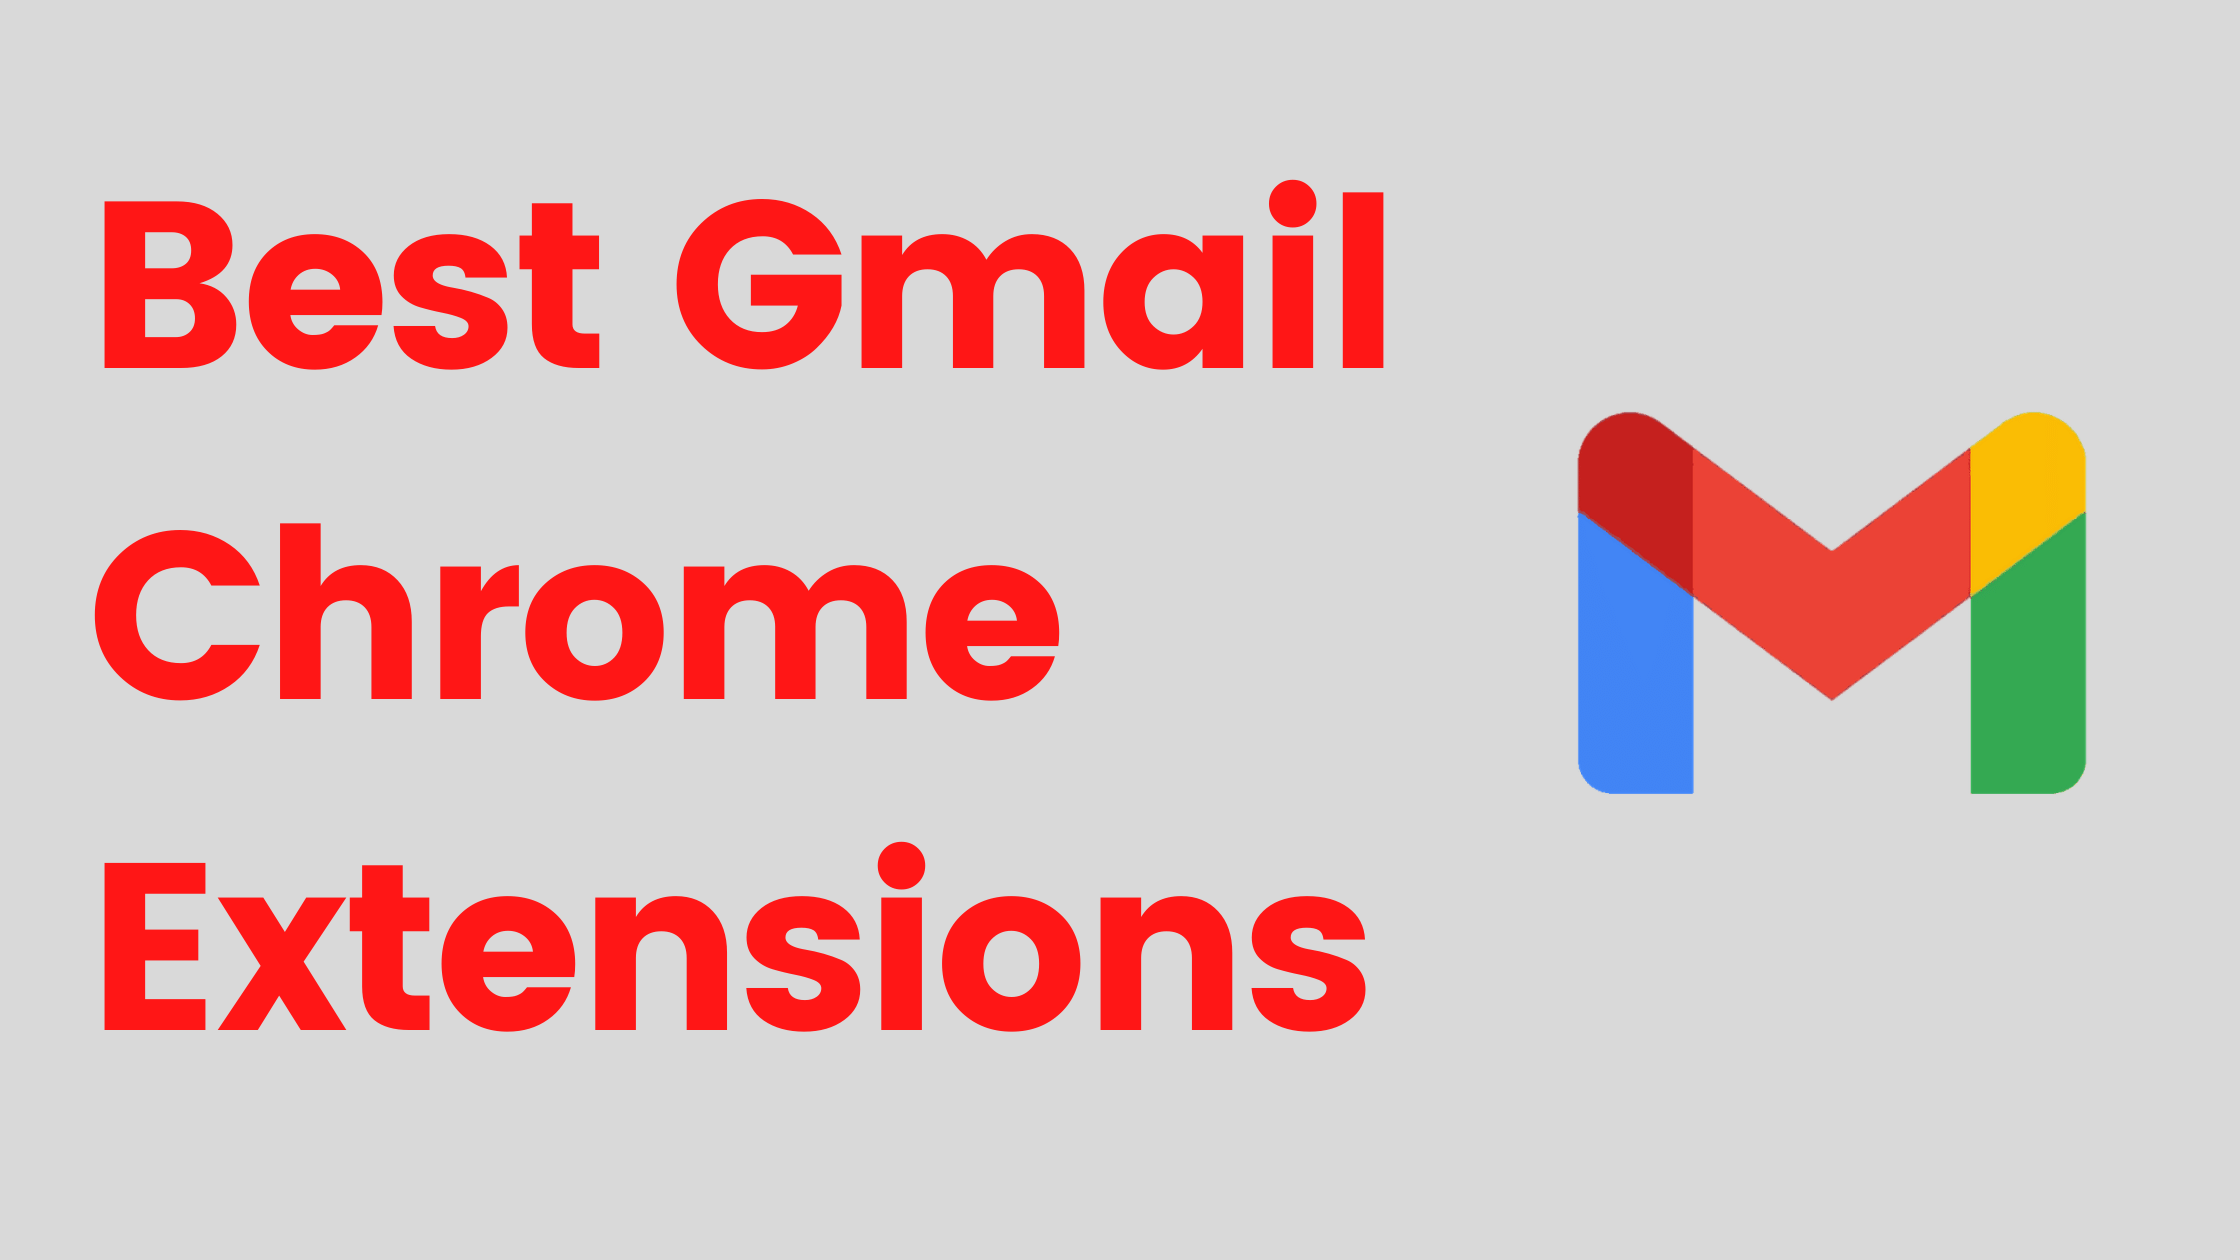 9 Best Gmail Chrome Extensions